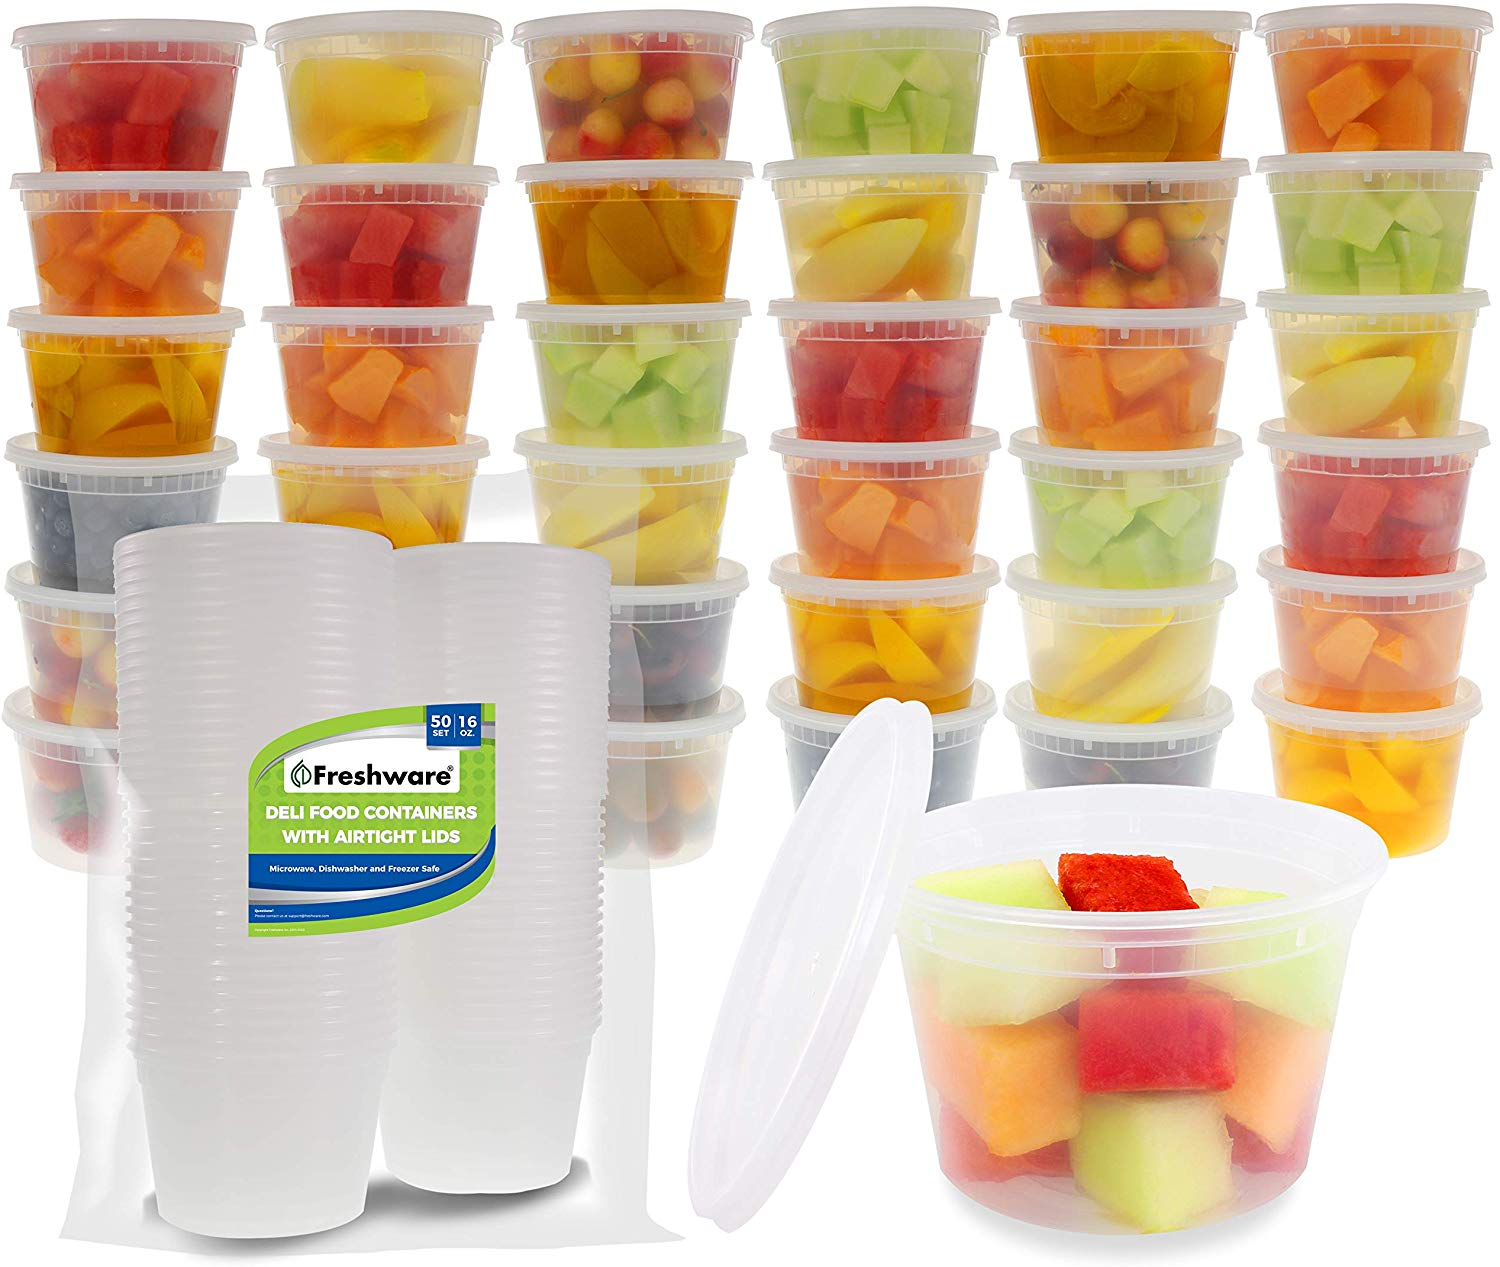 Food Storage Containers [50 Pack] 16 oz Plastic Containers with Lids, Deli, Slime, Soup, Meal Prep Containers | BPA Free | Stackable | Leakproof | Microwave/Dishwasher/Freezer Safe